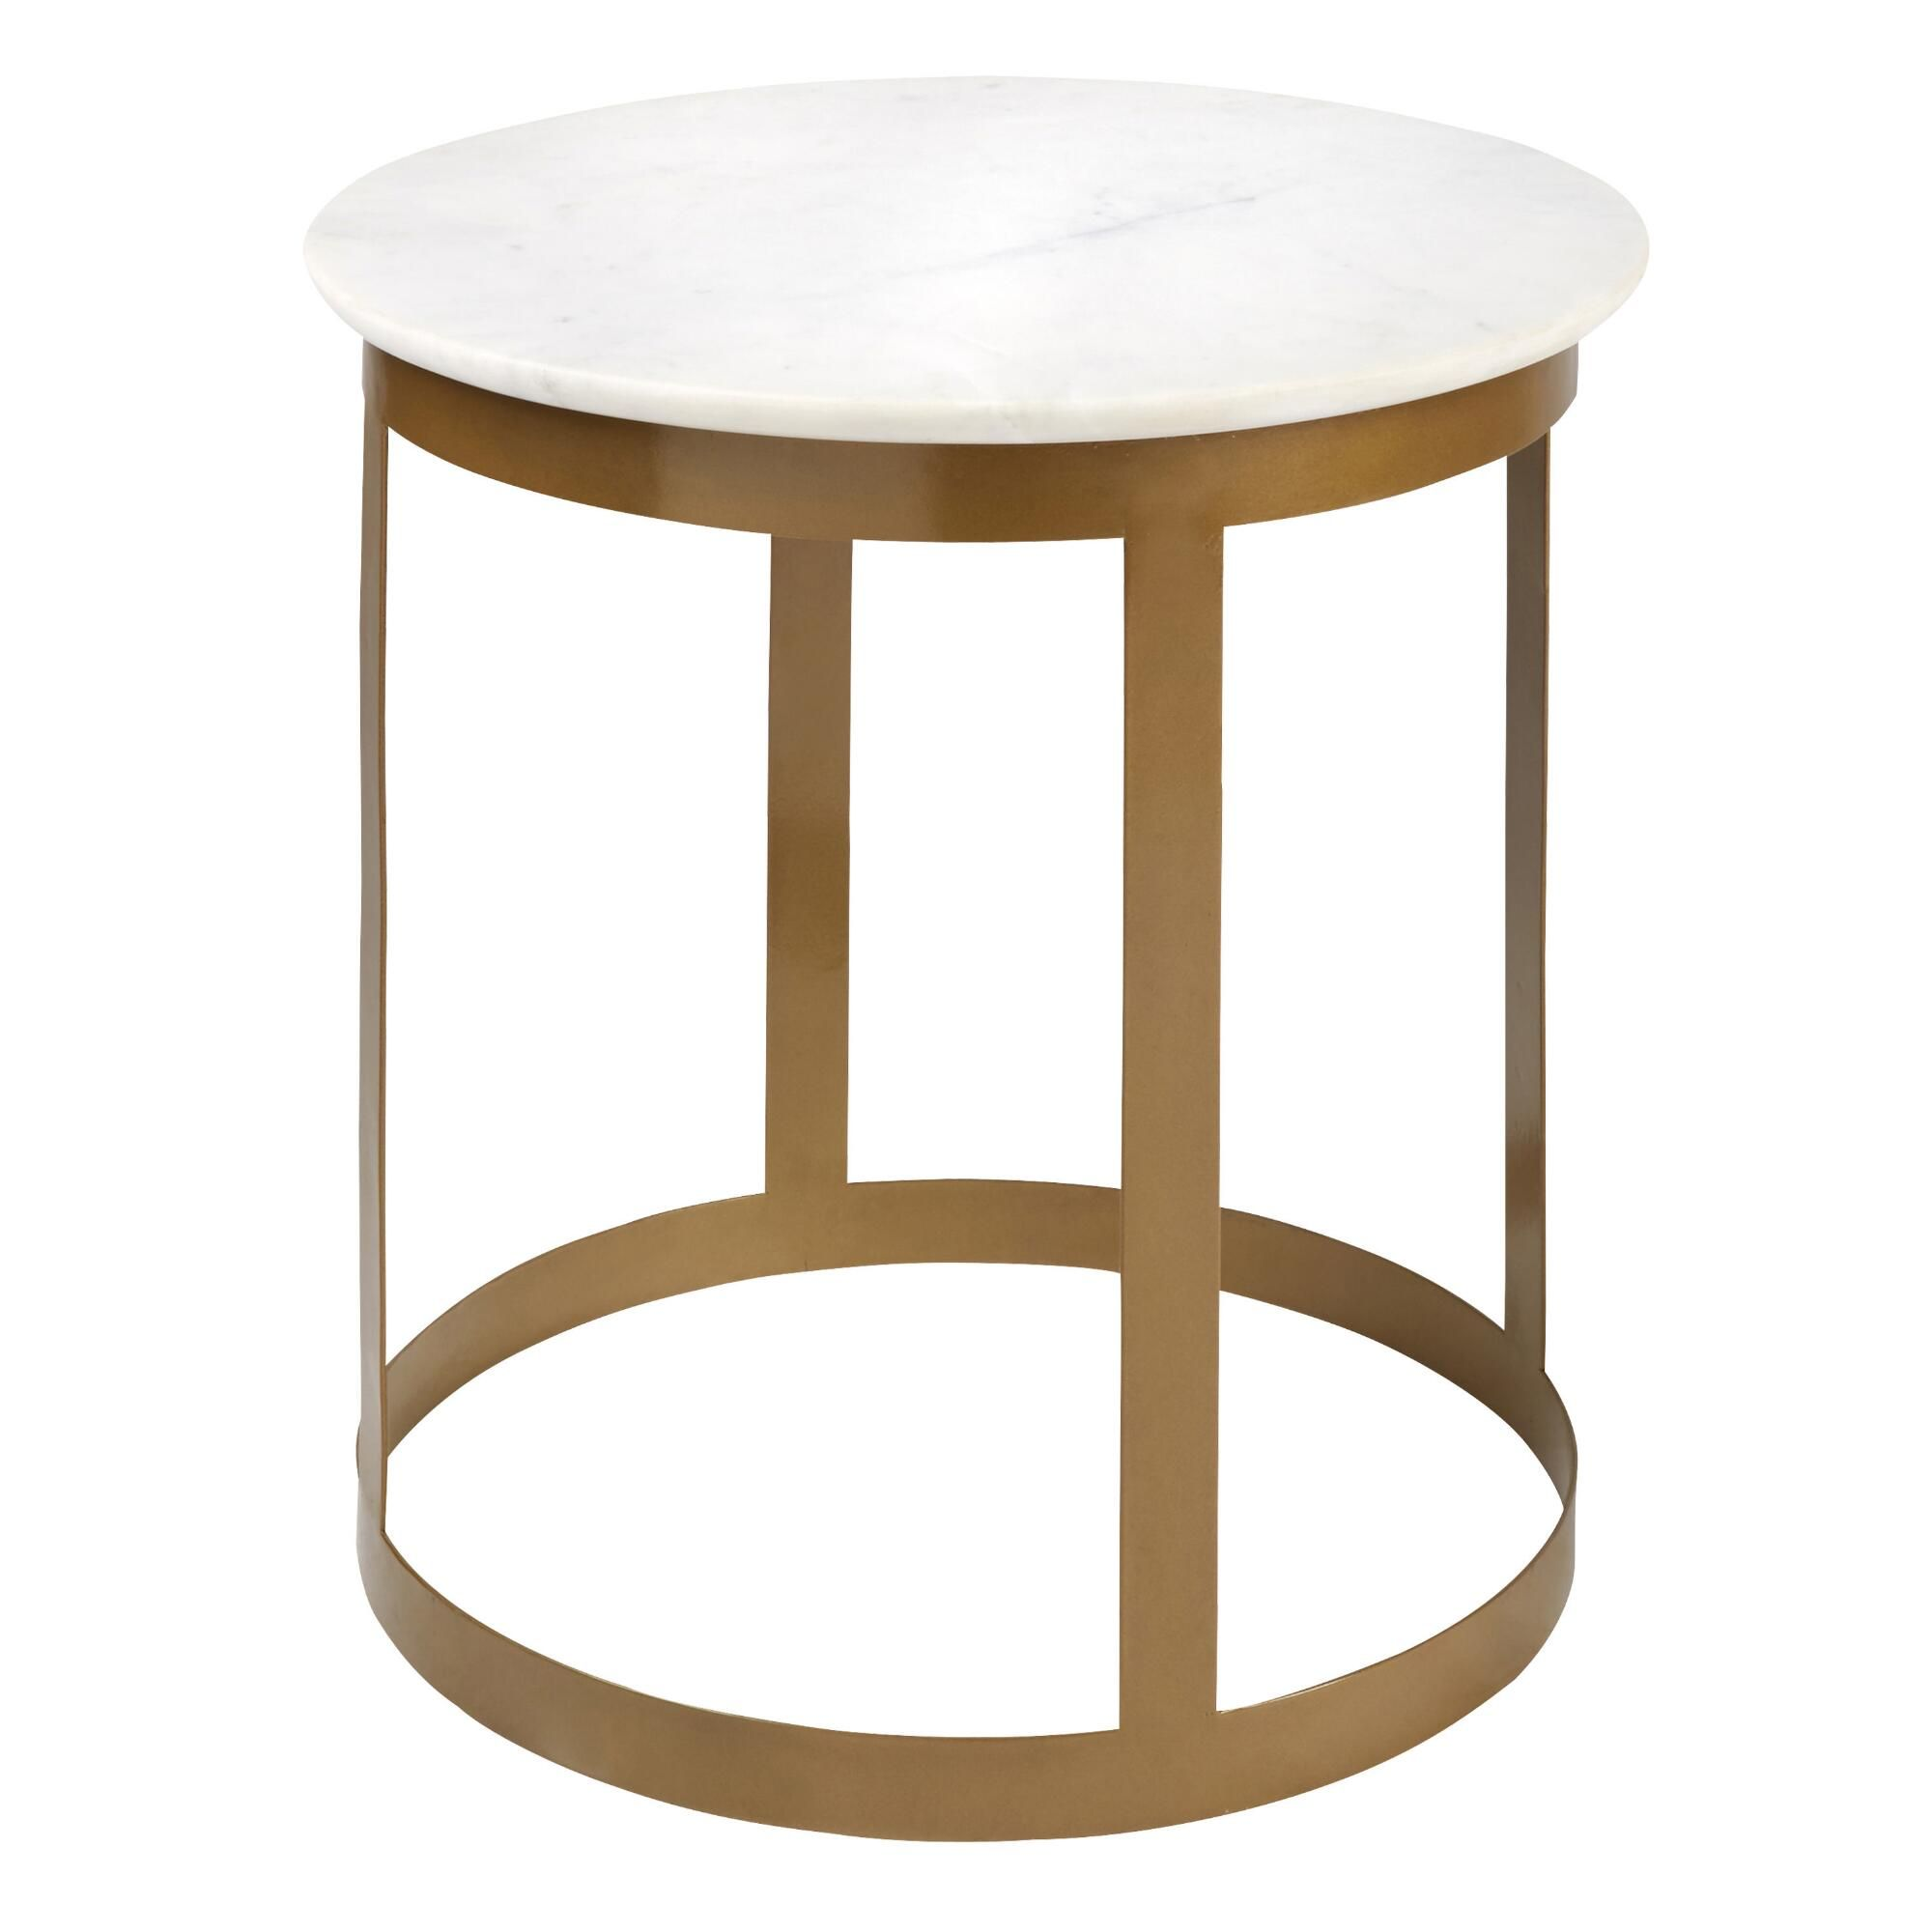 gold frame round accent table with marble top tree marbles timberline furniture patio coffee ideas stump end hampton bay covers nearby bar height storage grey curtains starfish